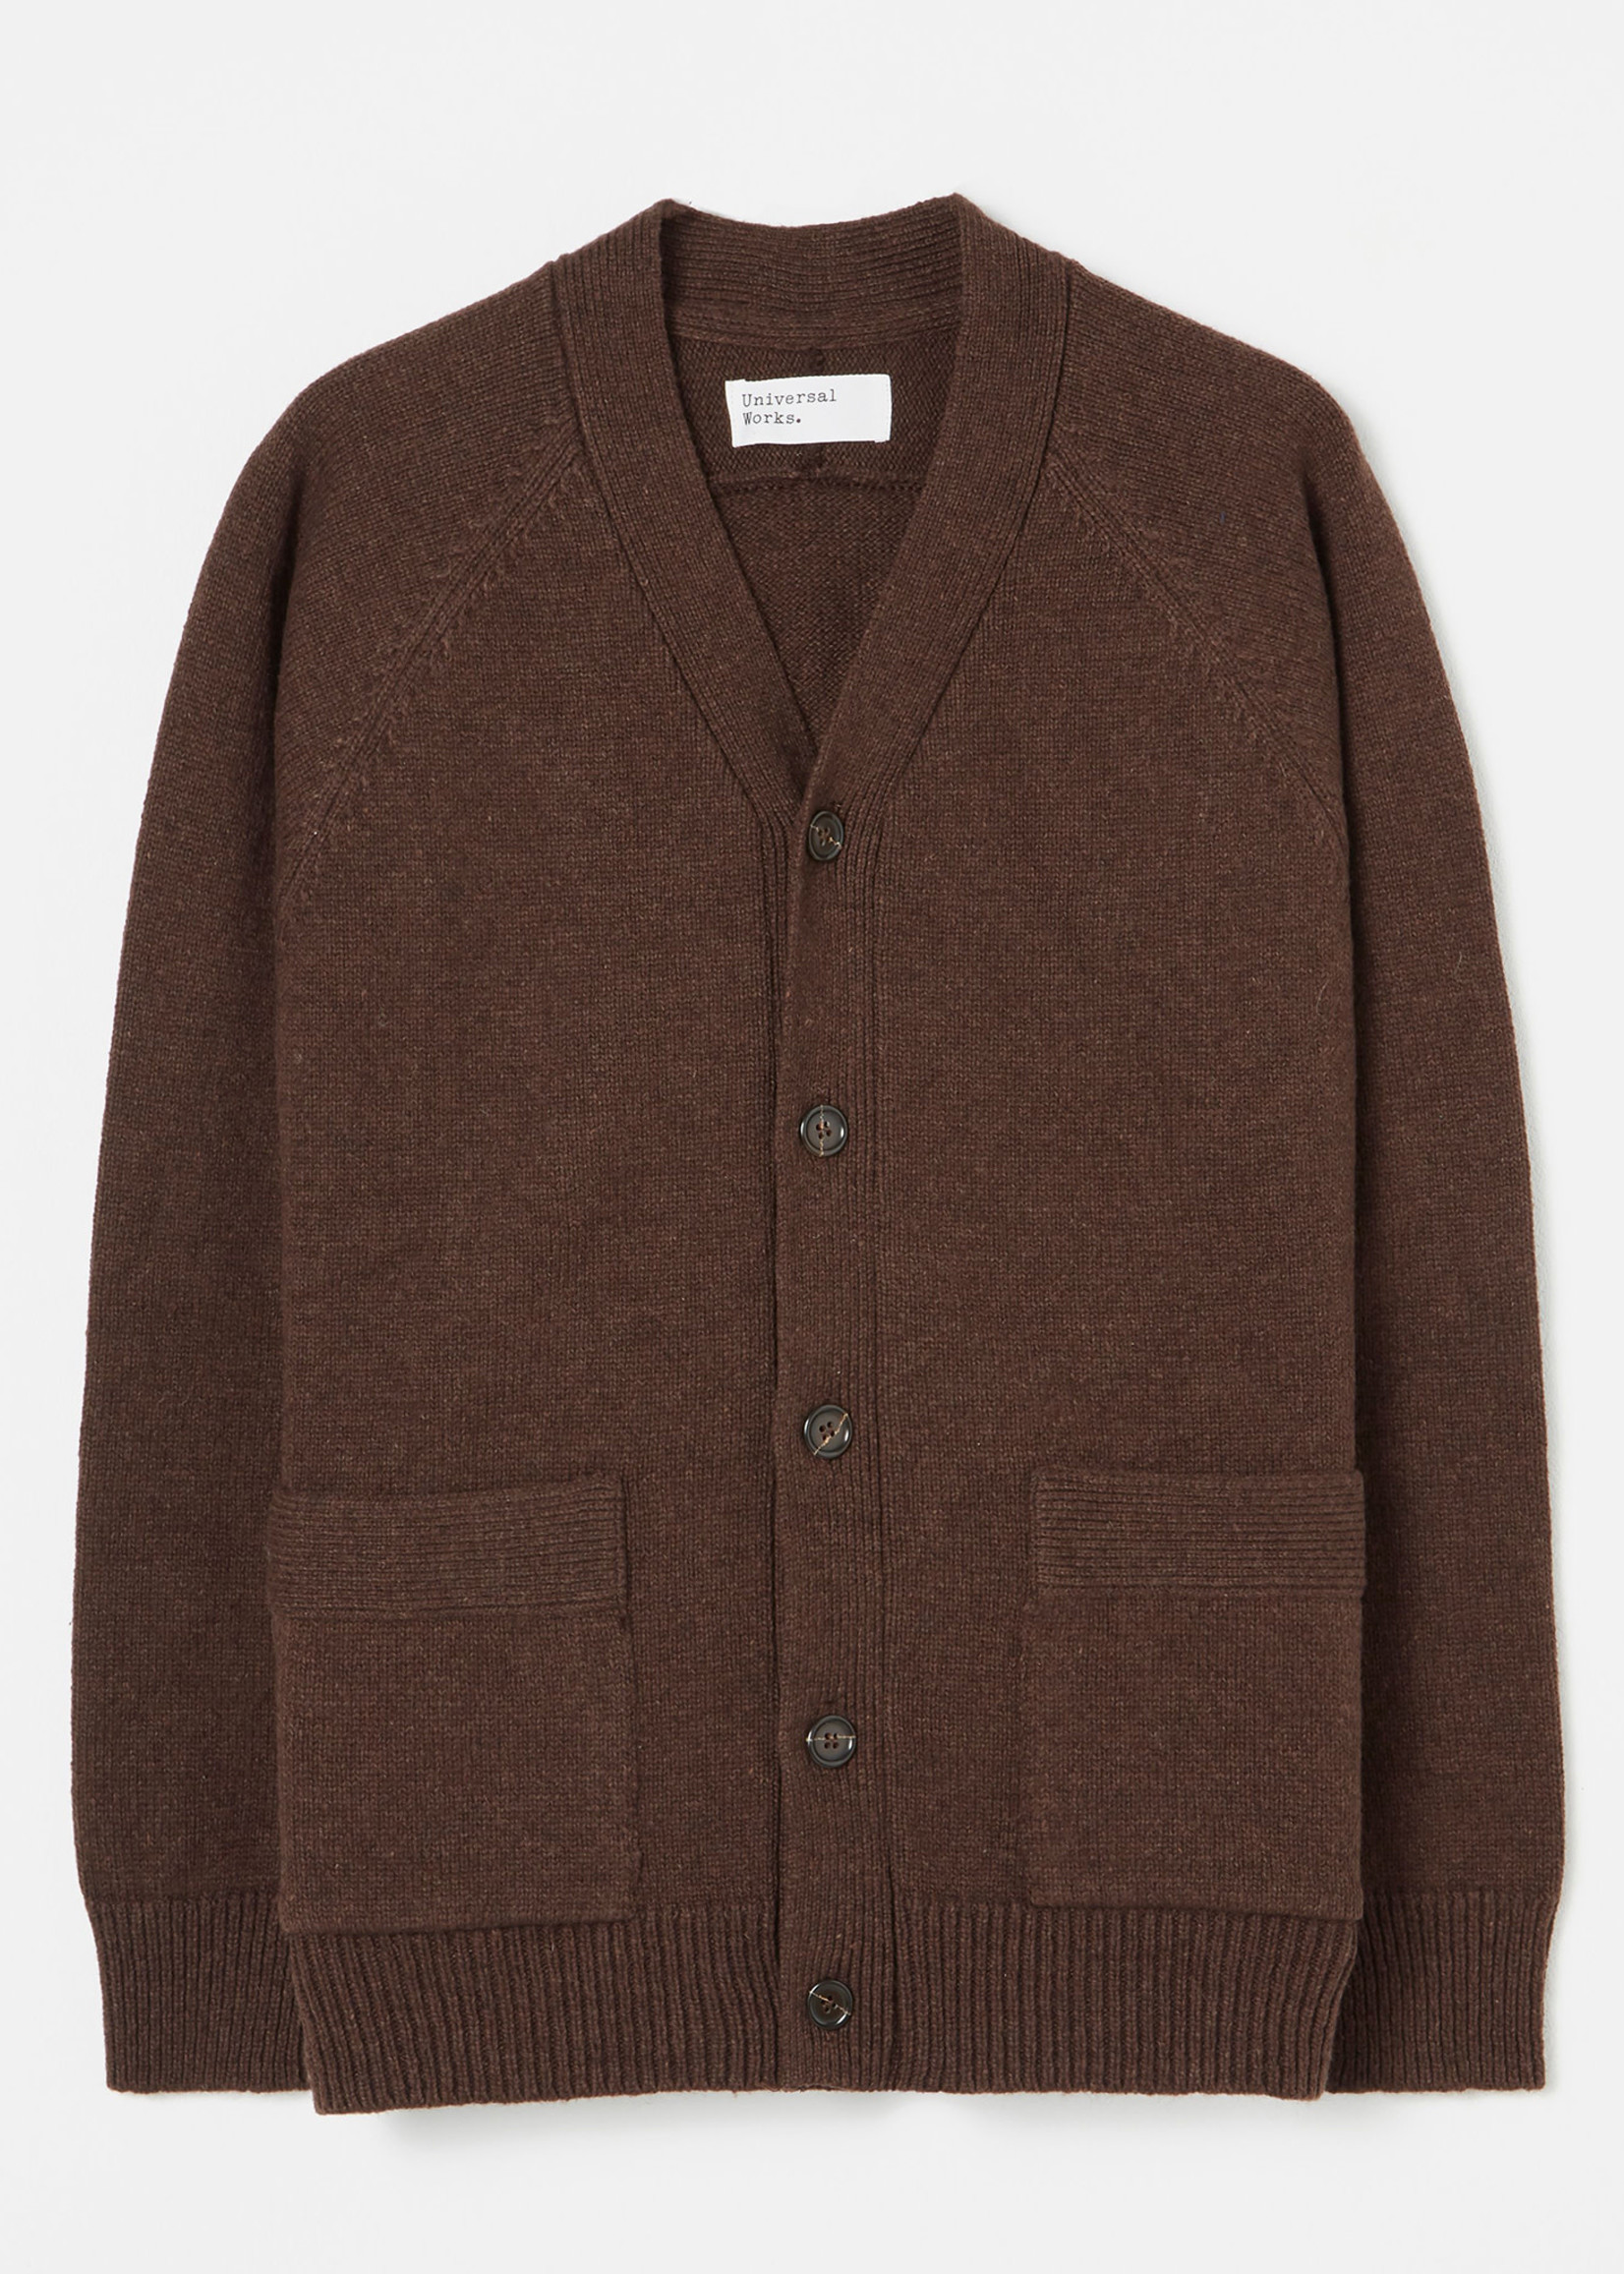 Universal Works Vince Cardigan Chocolate Wool by Universal Works